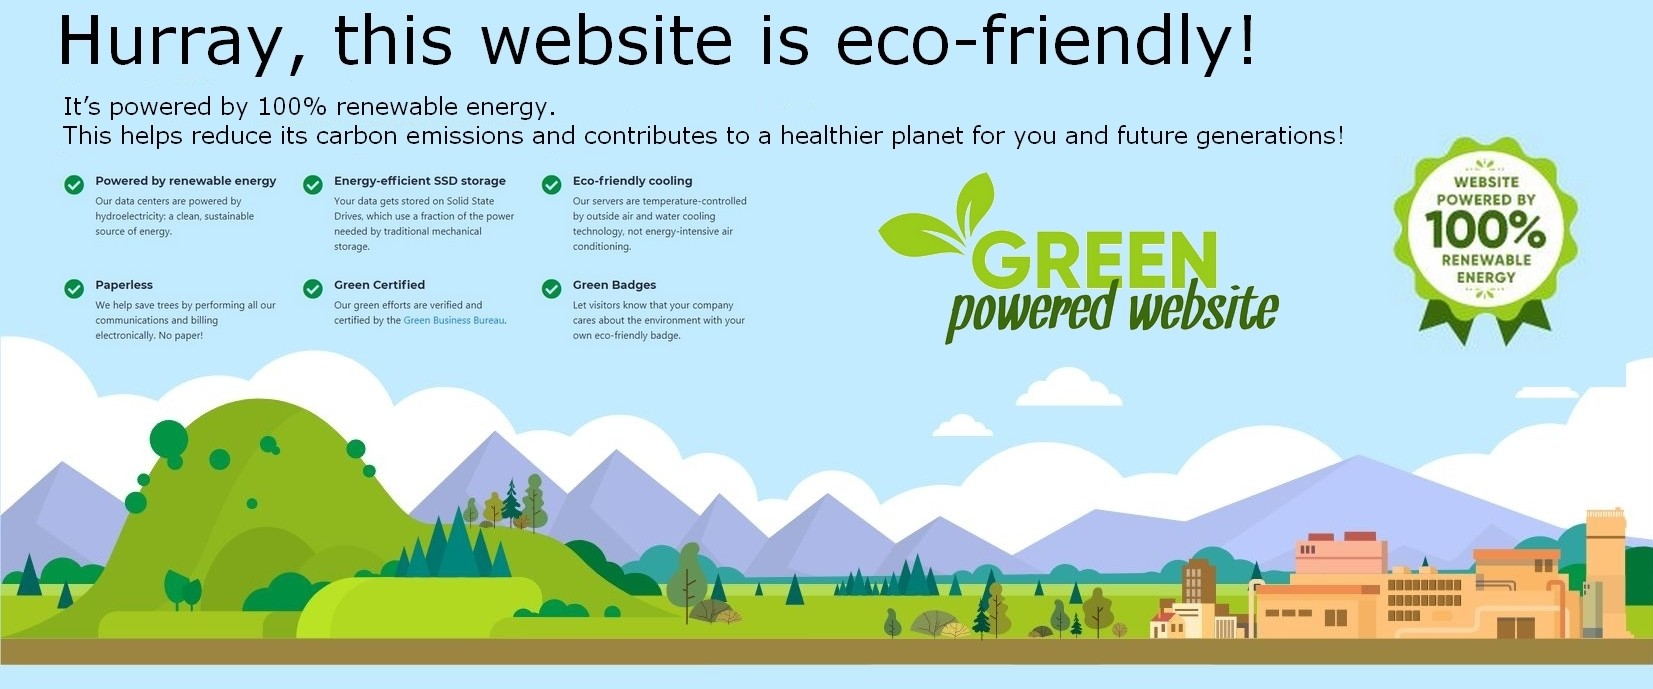 Ecoresponsible website